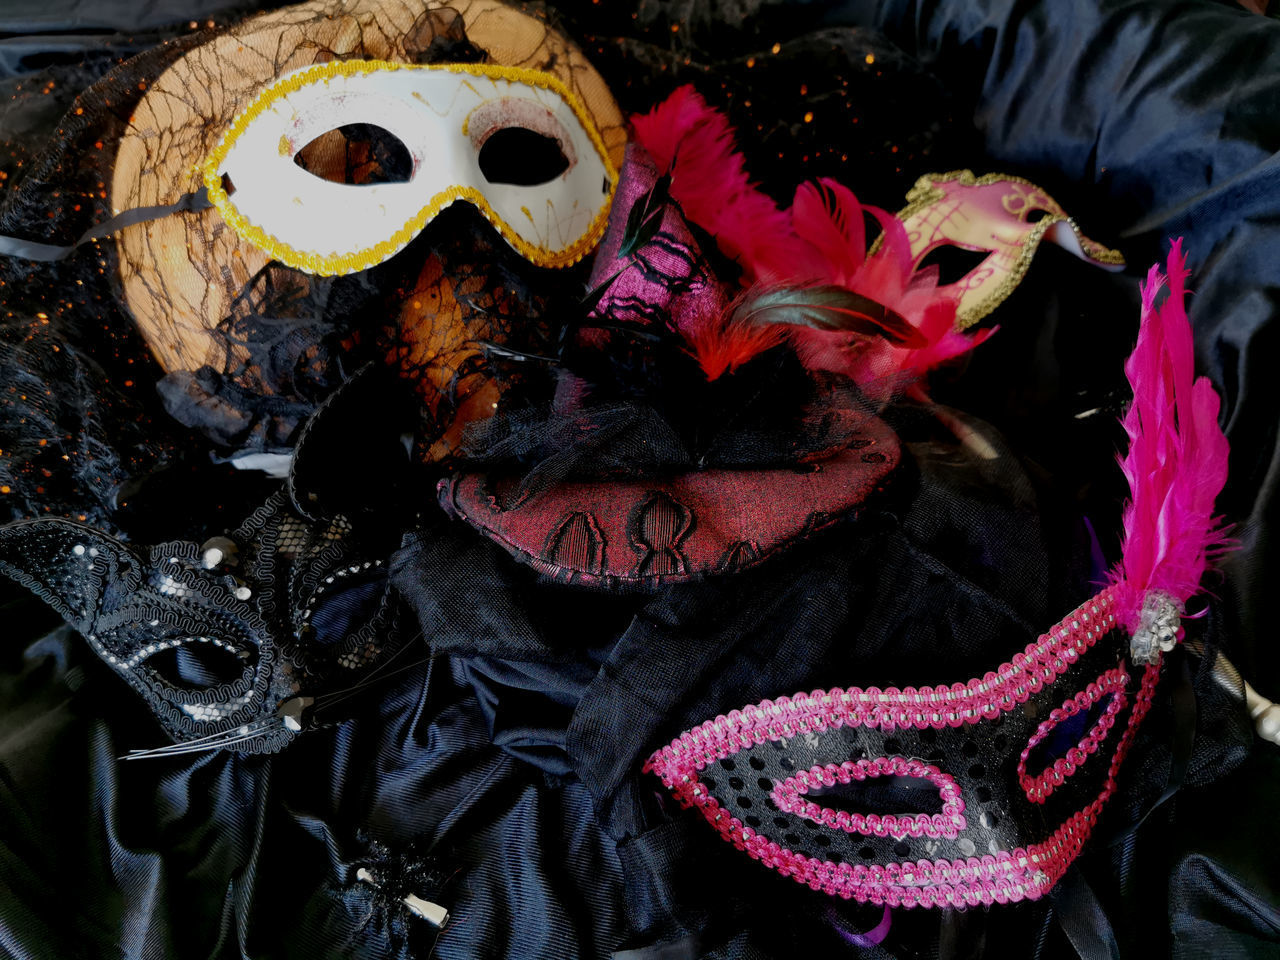 mask - disguise, mask, disguise, costume, celebration, close-up, creativity, venetian mask, no people, carnival, carnival - celebration event, day, representation, art and craft, focus on foreground, festival, outdoors, obscured face